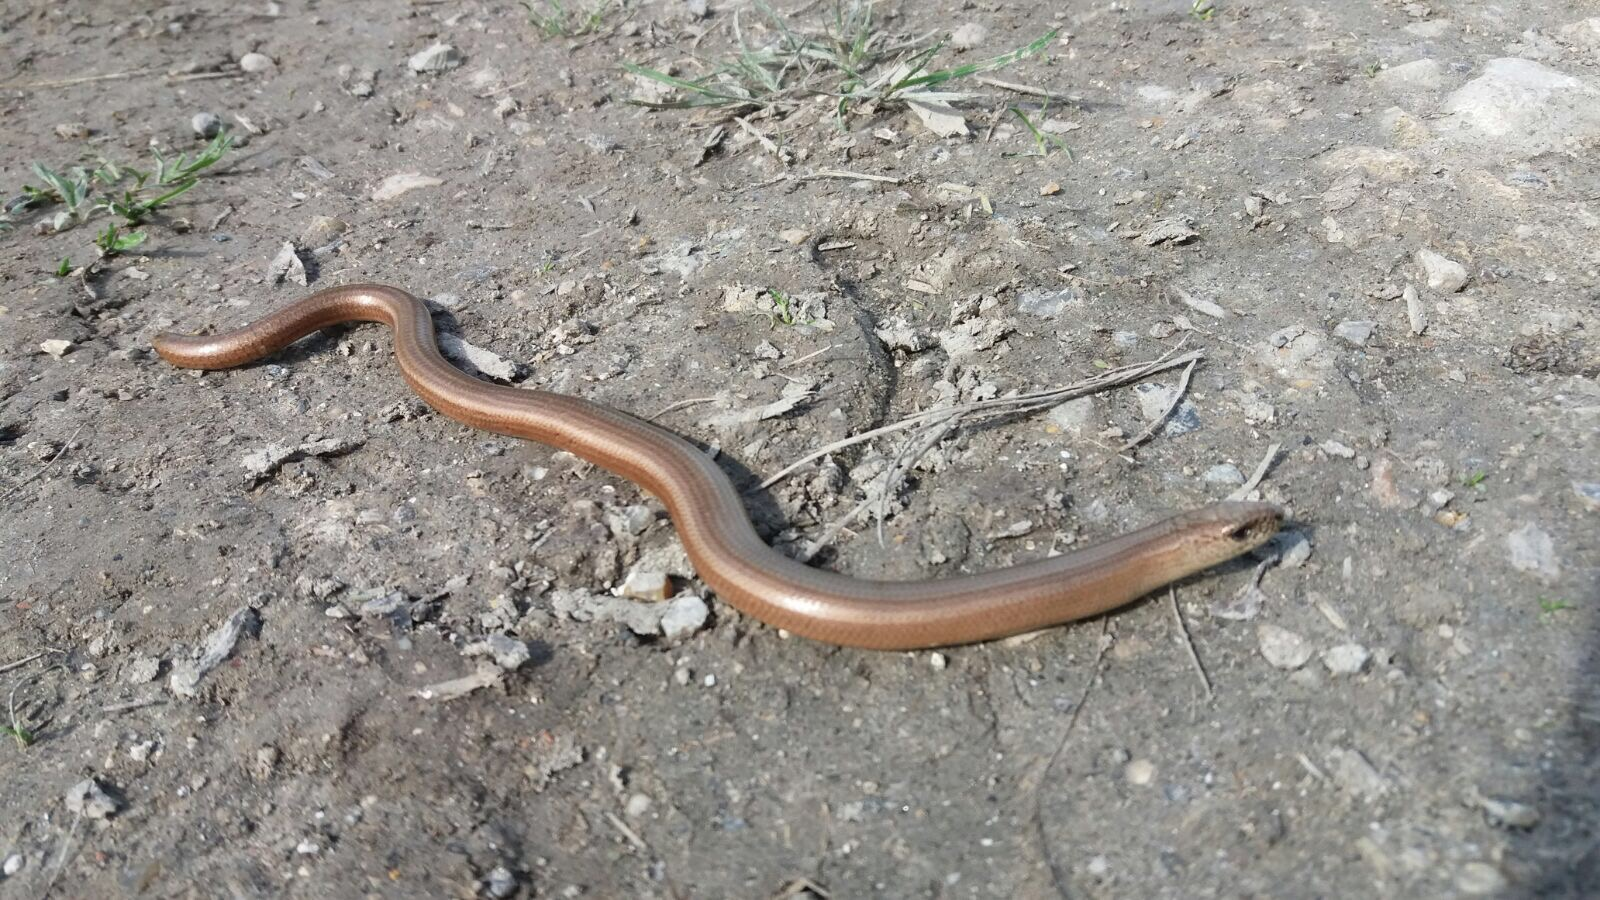 A slow worm!